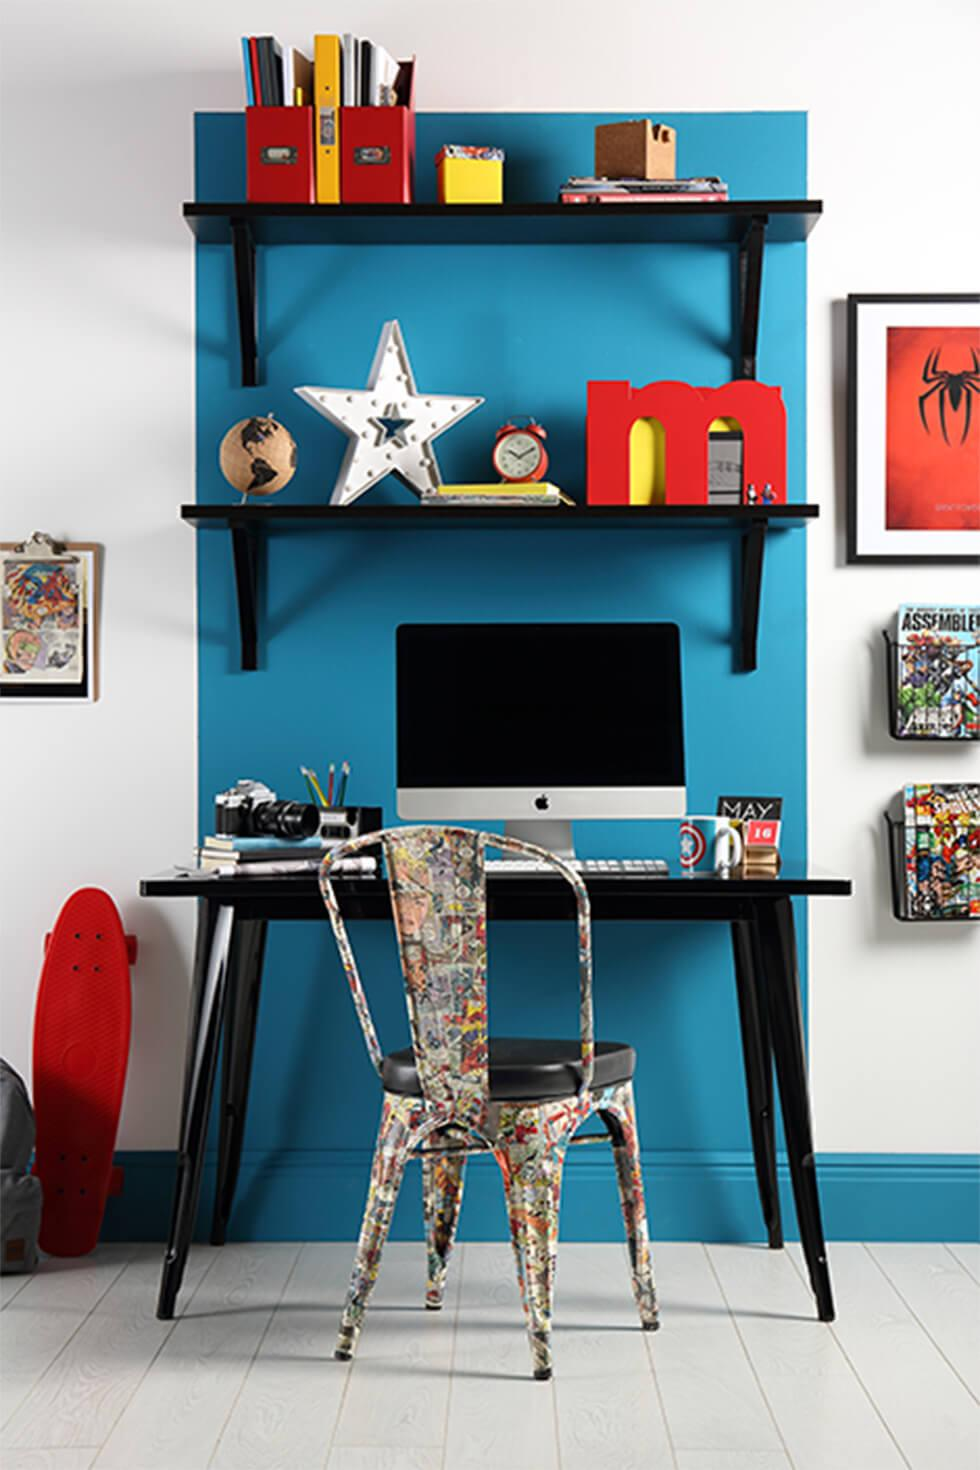 Home office with half-painted blue walls